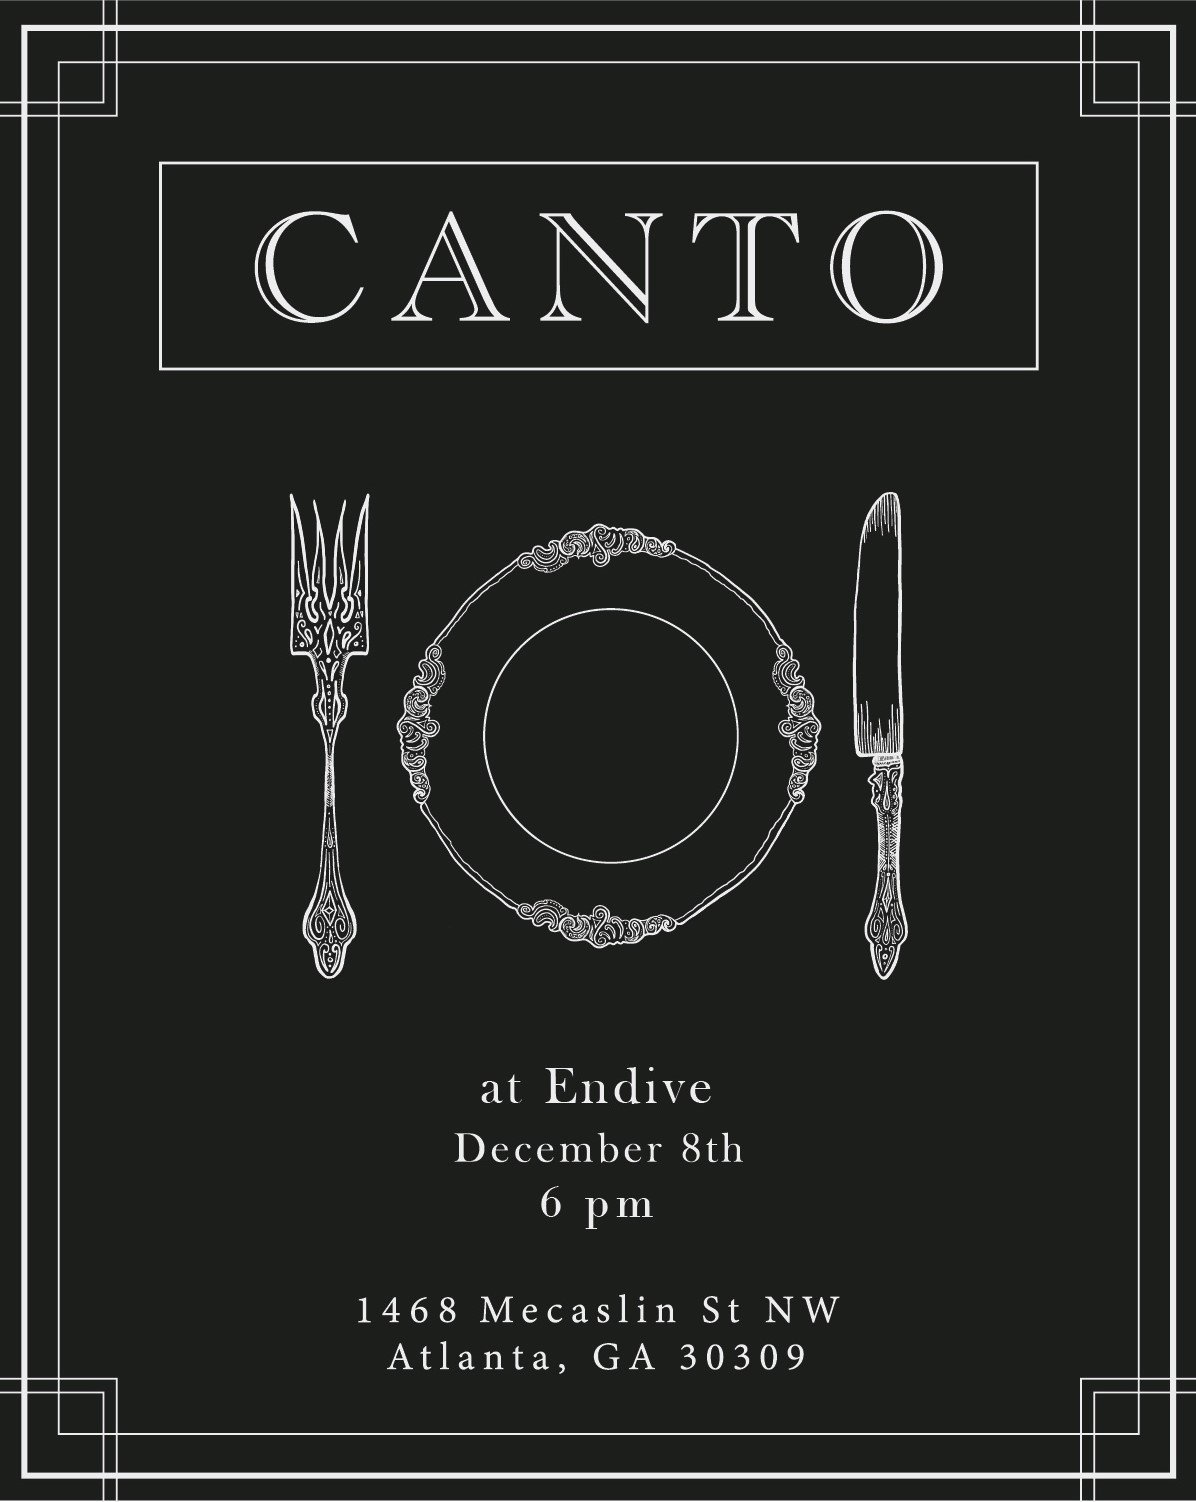 Canto Social Club Flyer